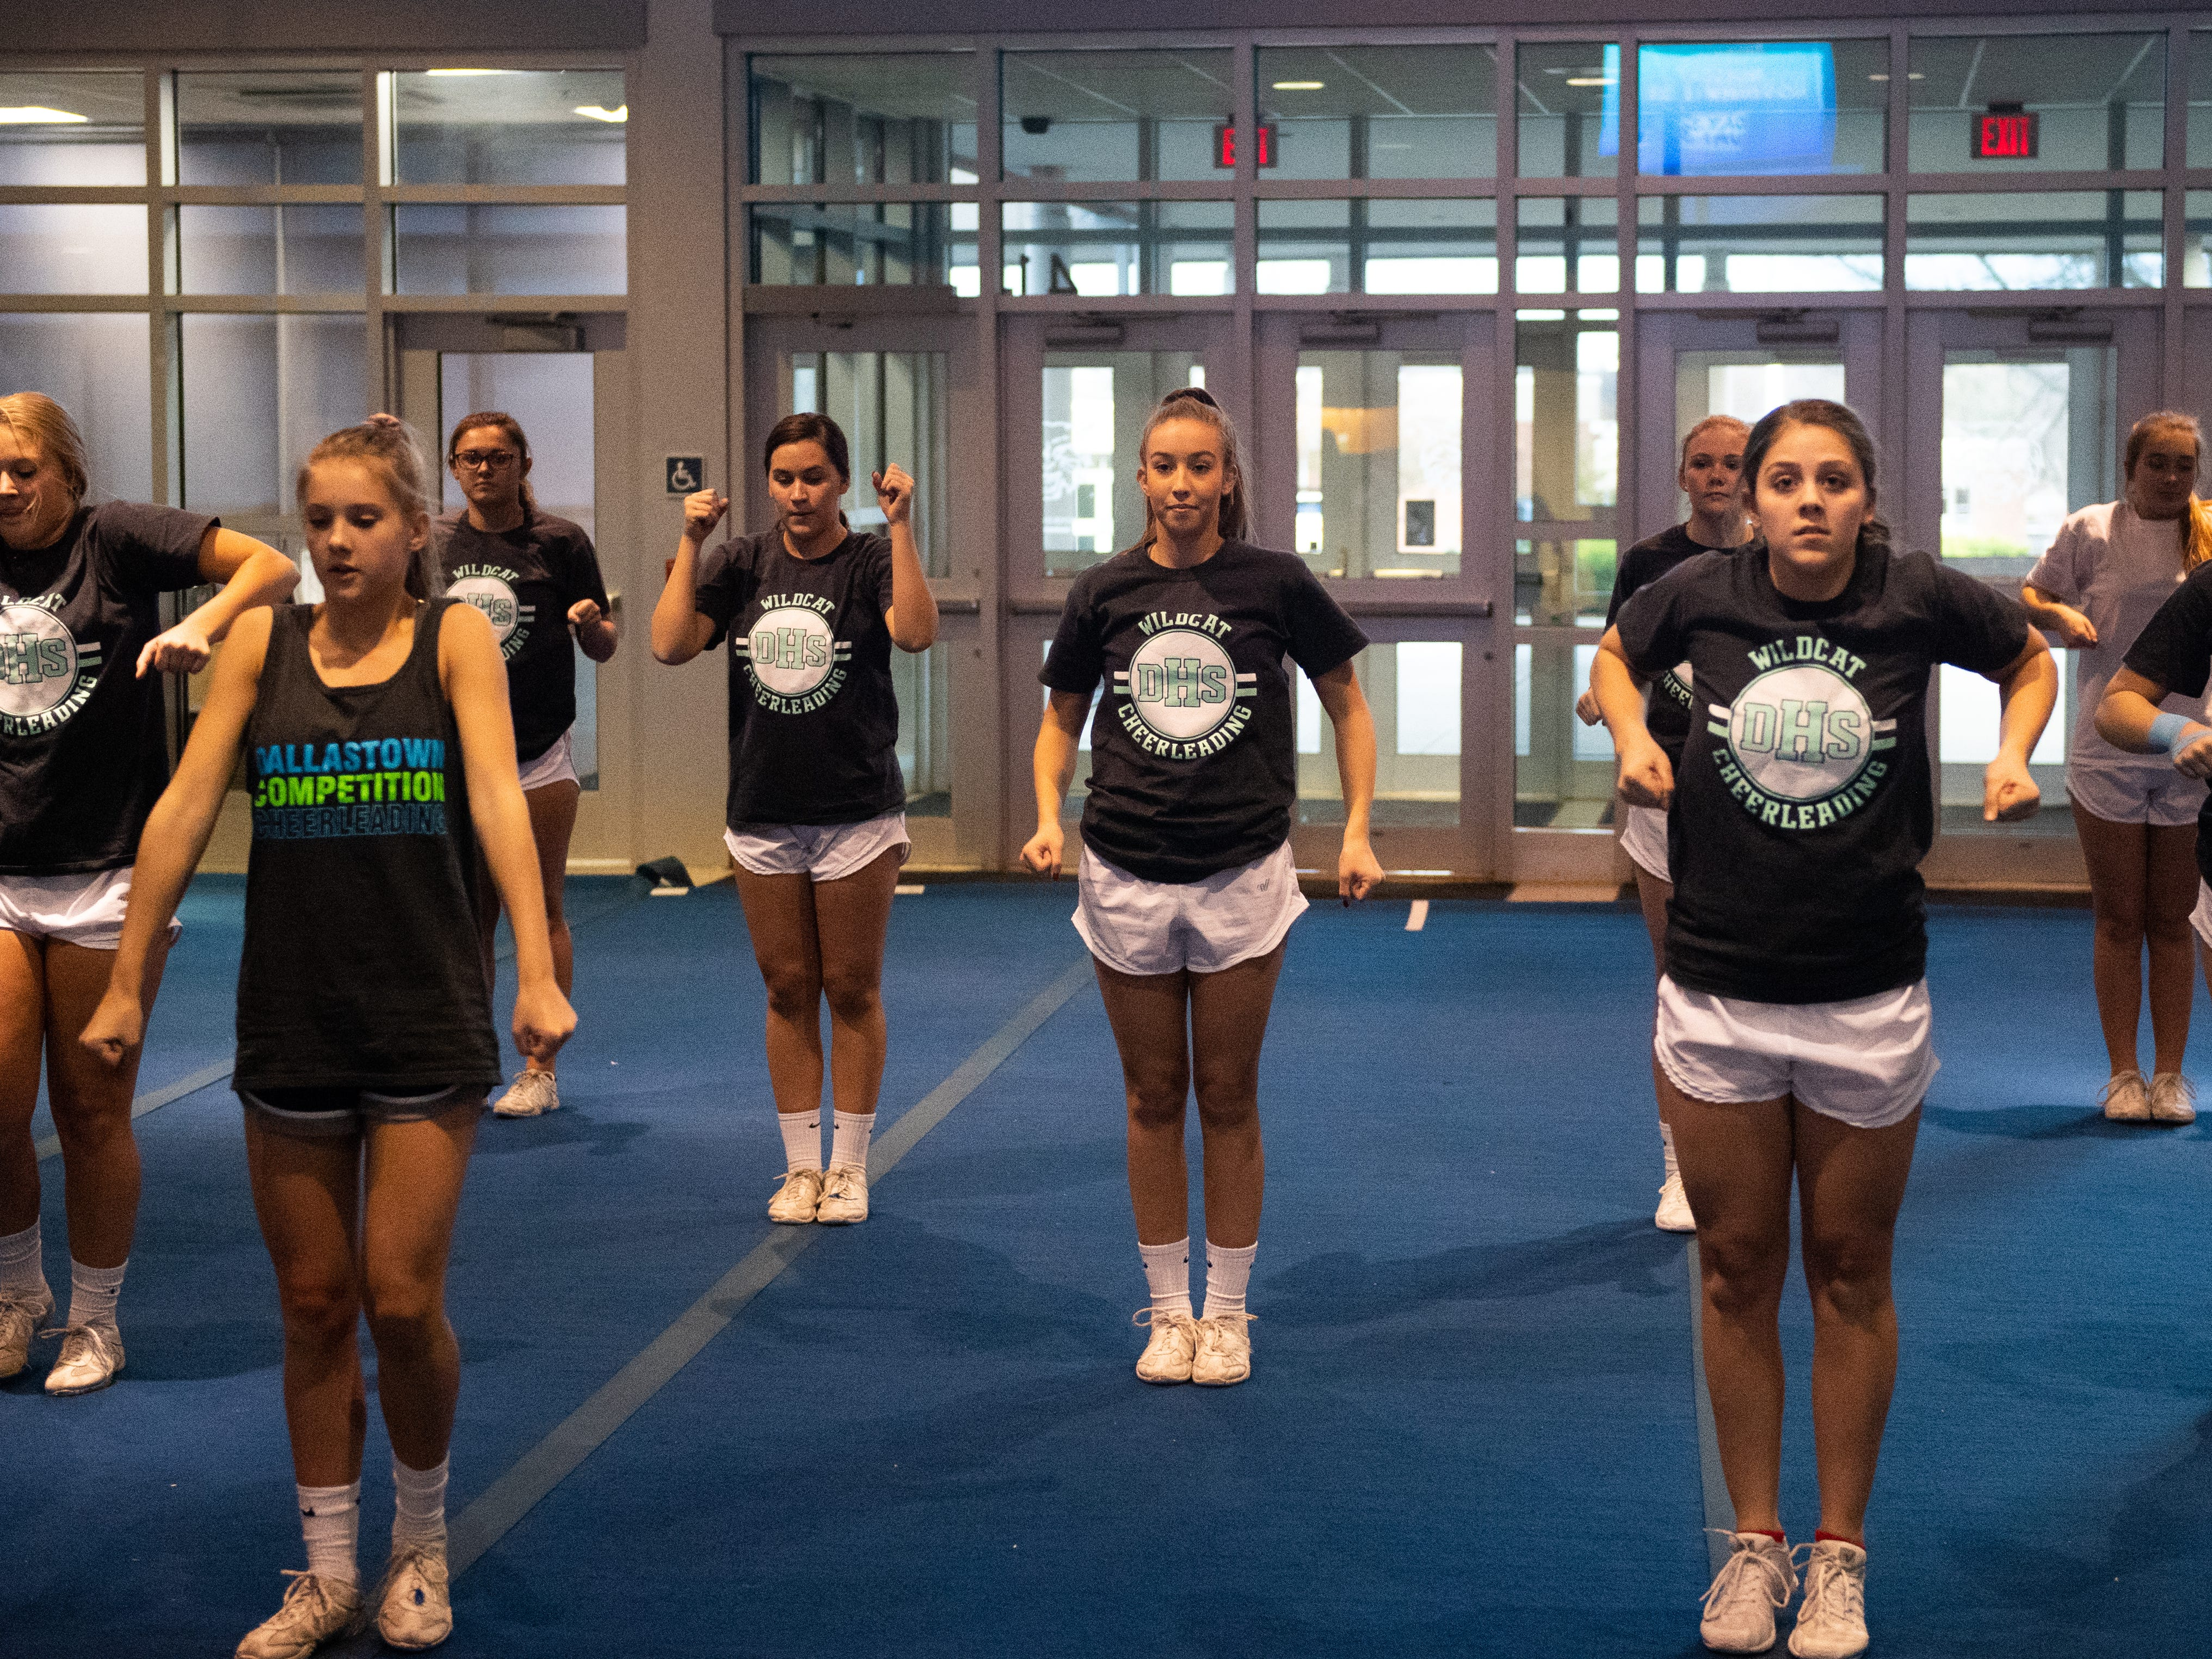 The Dallastown competitive spirit squad start their routine during practice, November 14, 2018.